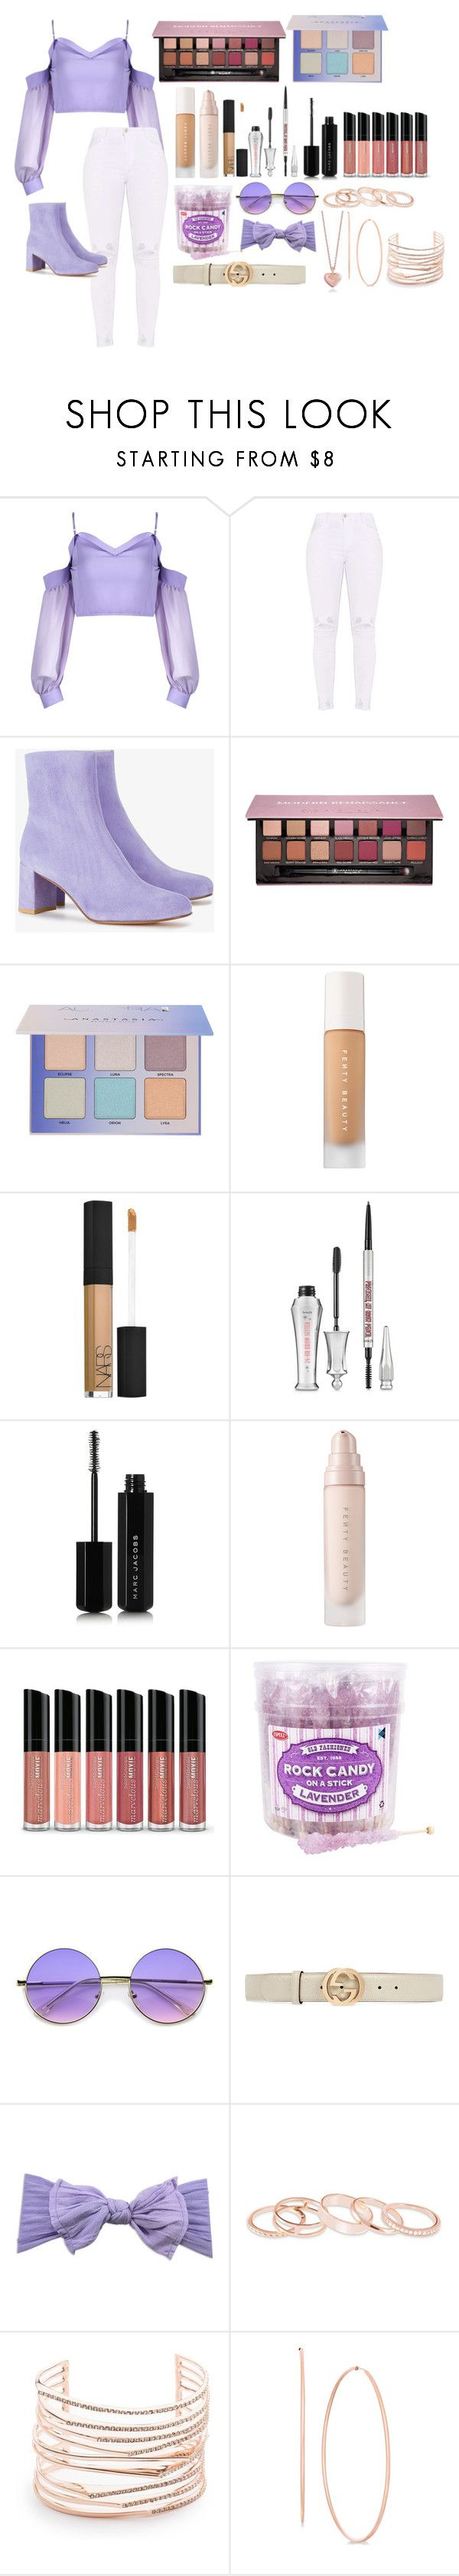 """""""Untitled #36"""" by opalpixs ❤ liked on Polyvore featuring Maryam Nassir Zadeh, Anastasia Beverly Hills, Puma, NARS Cosmetics, Benefit, Marc Jacobs, Bare Escentuals, ZeroUV, Gucci and Kendra Scott"""